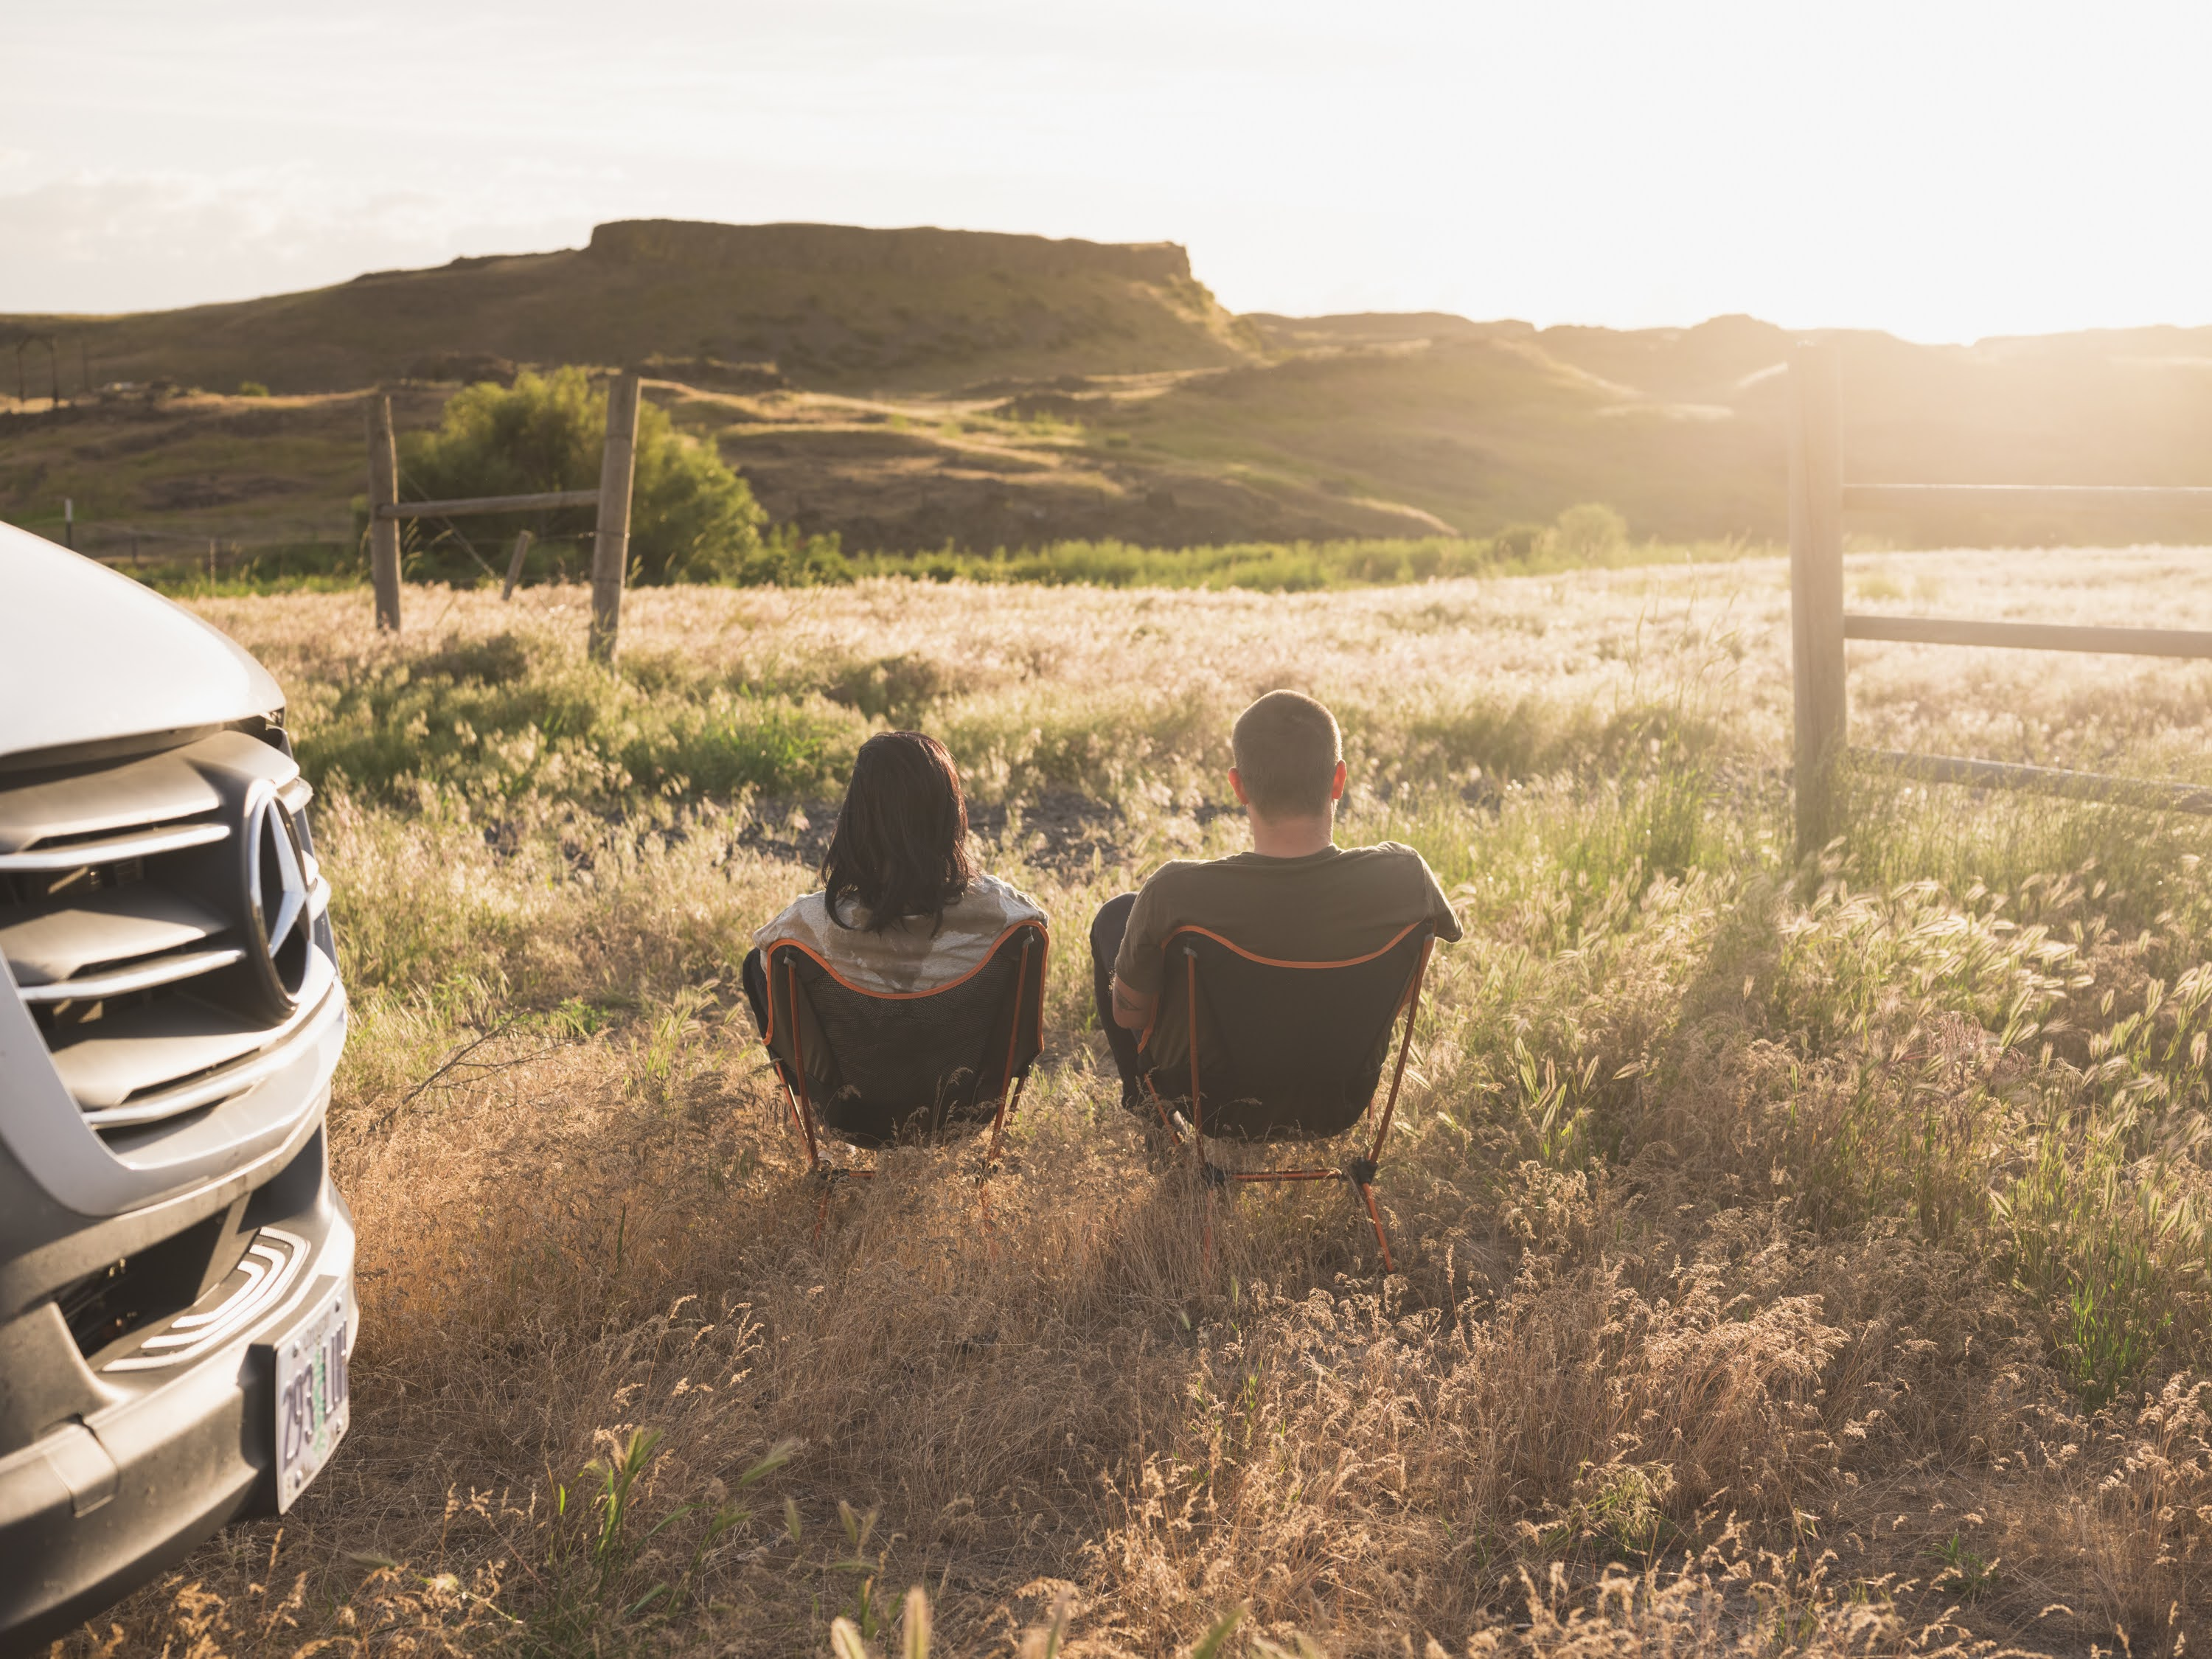 Two people sitting in camp chair by van